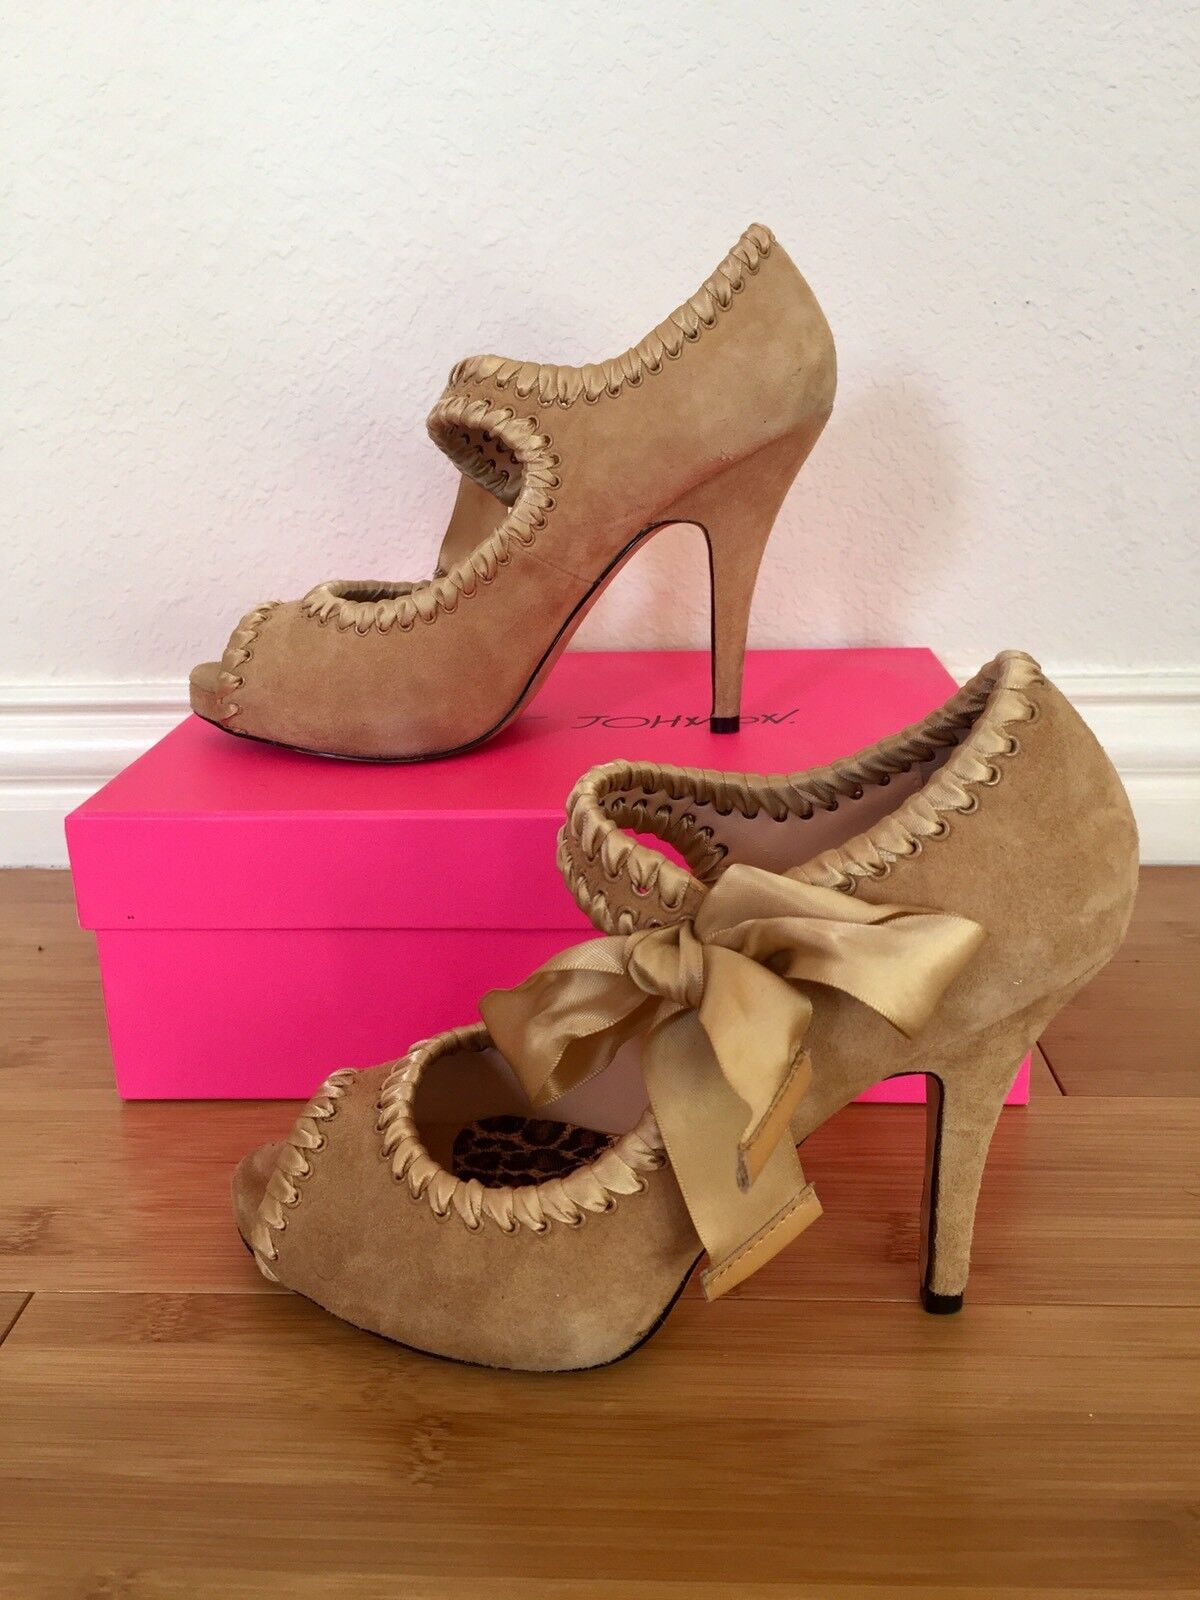 BETSEY JOHNSON SOFT TAN TAN TAN SUEDE LEATHER Schuhe MARY JANE HIGH HEEL PUMPS 7.5 M 0d3302